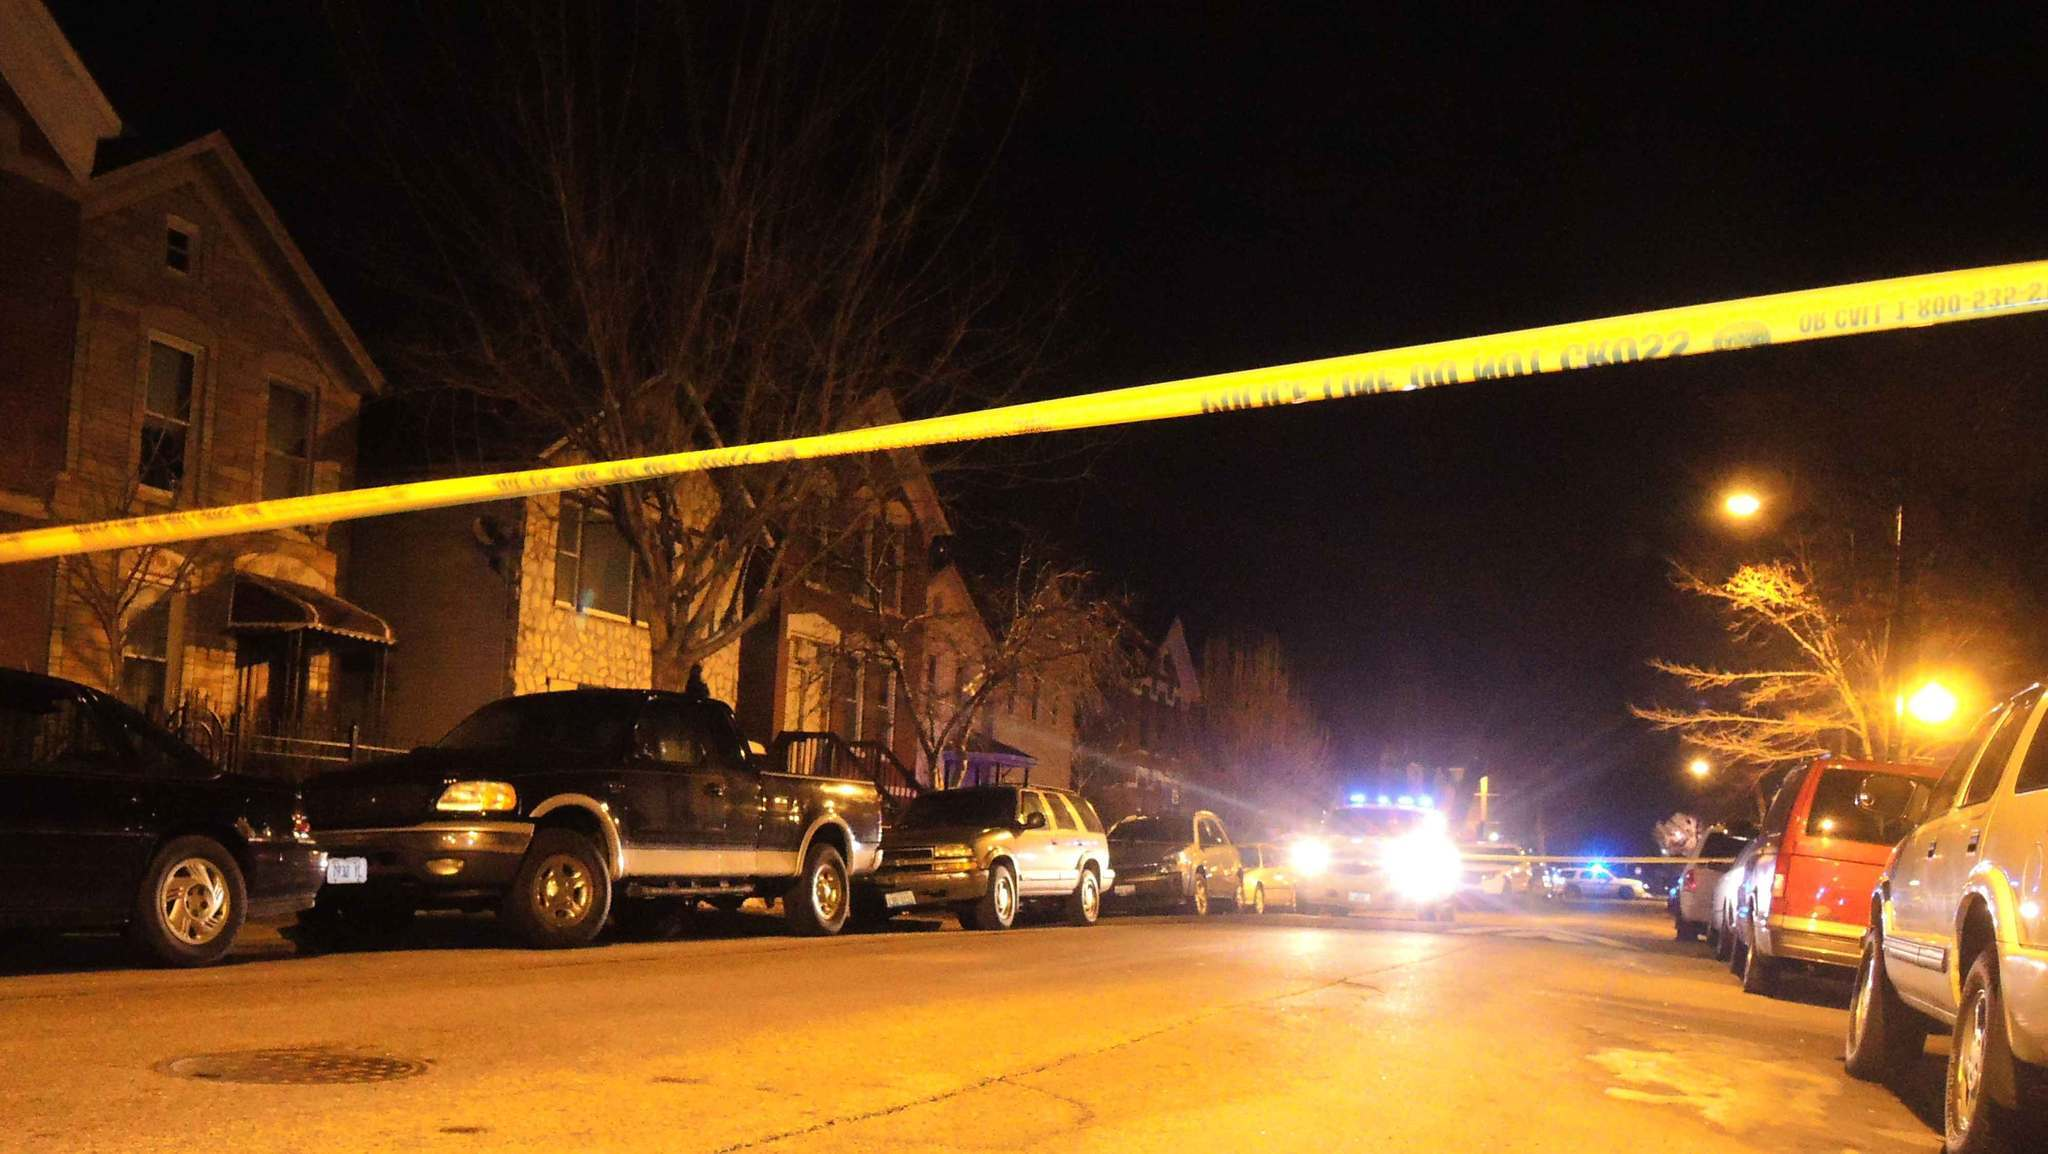 Police tape marks the edge of a crime scene after a shooting in the 1600 block of West 21st Place.